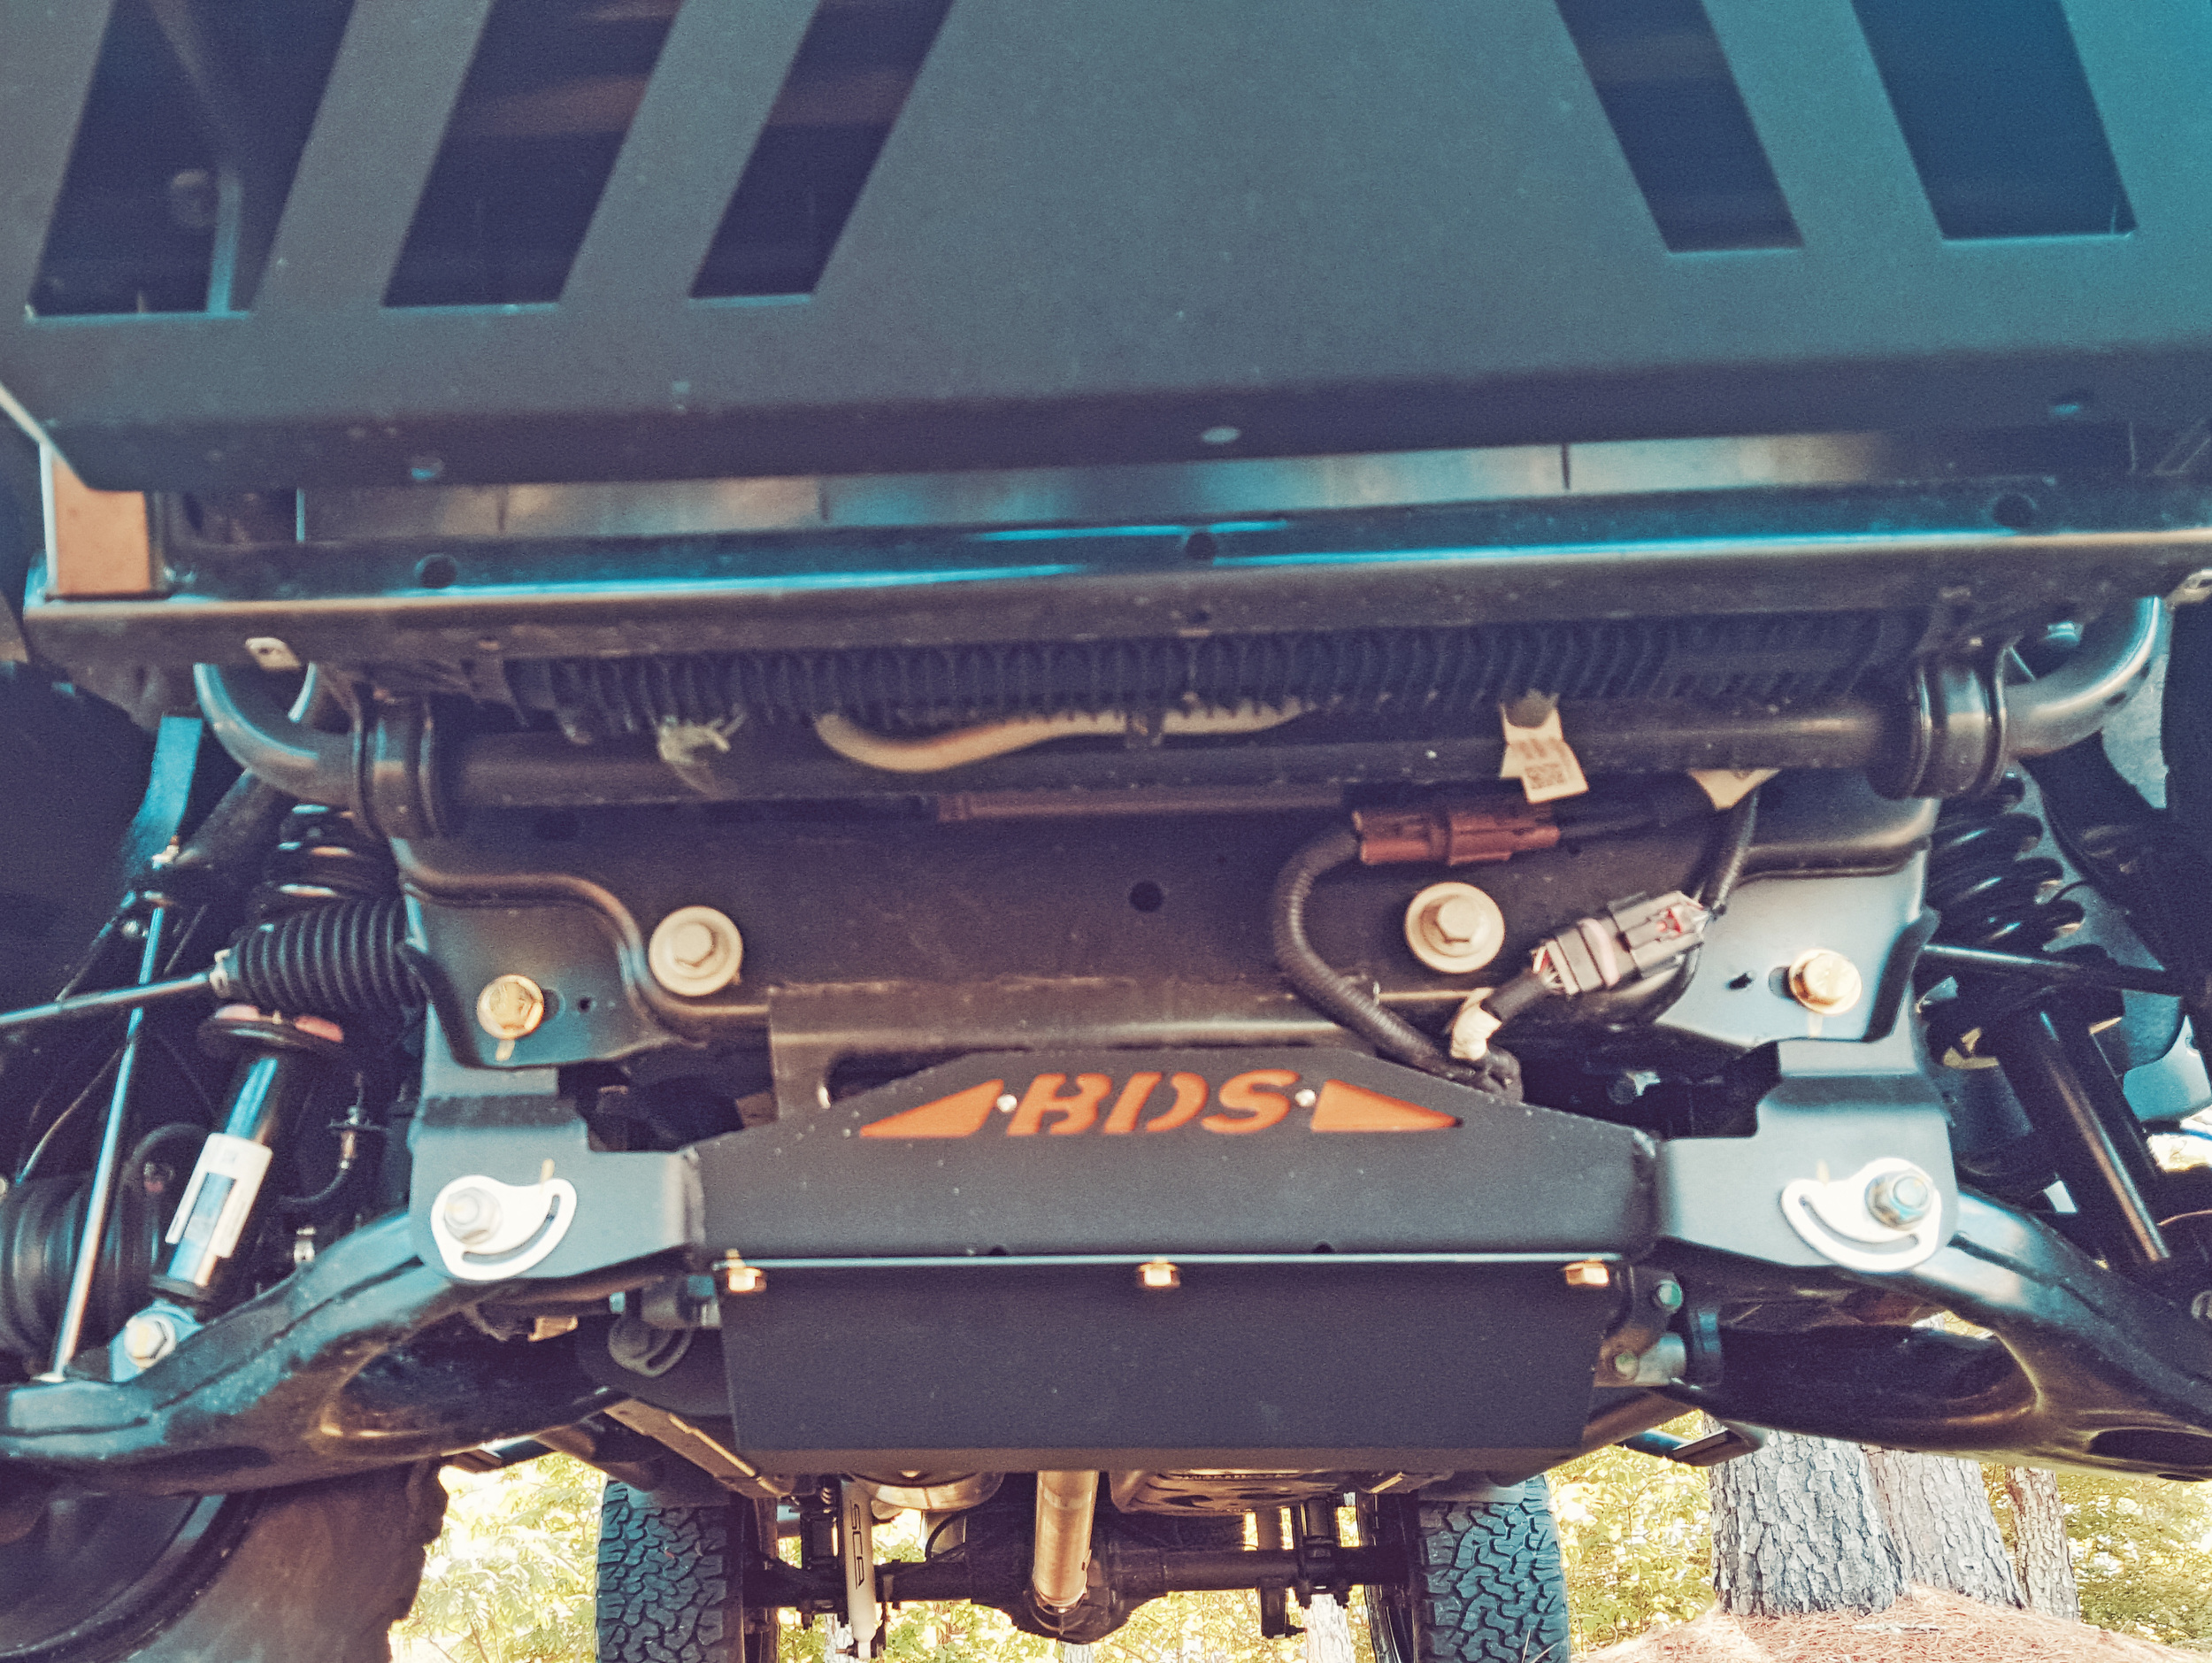 Copy of SCA Canyon BDS 5.5 Inch Suspension LIft